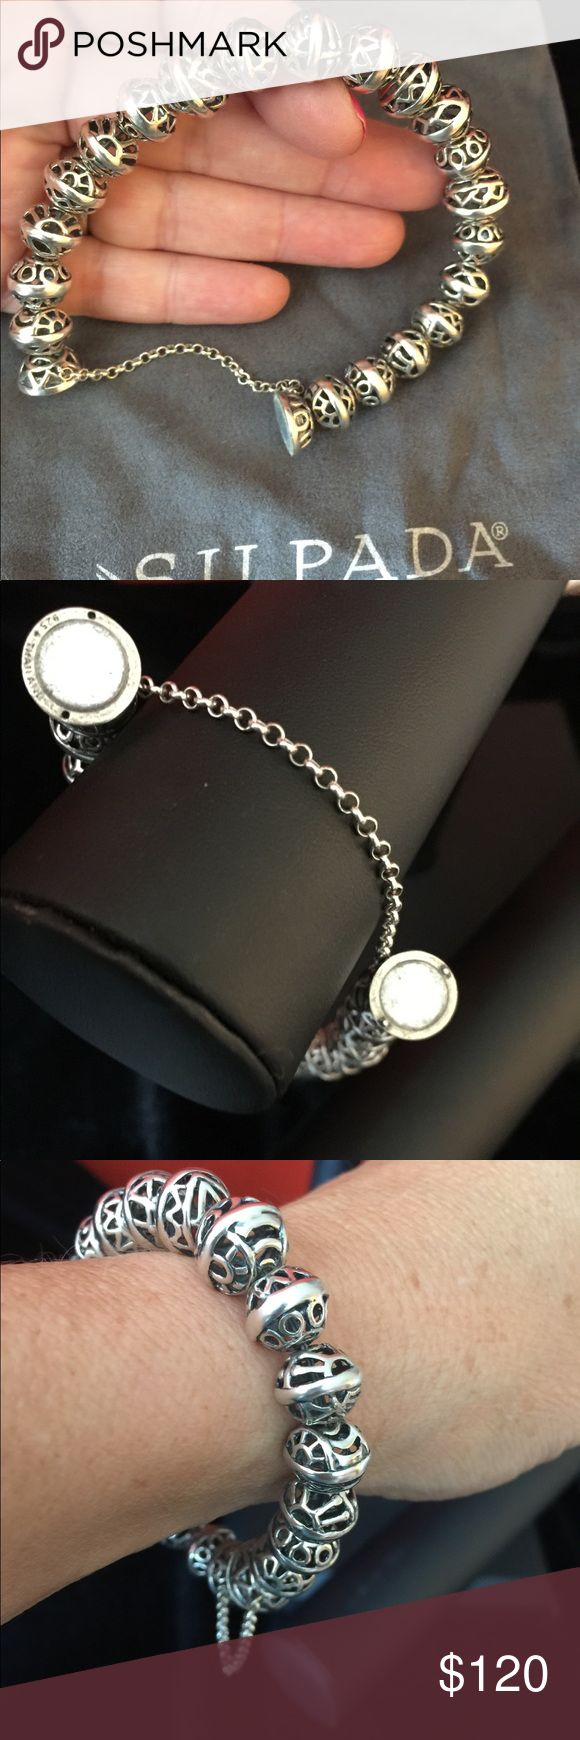 Silpada Designs Hemisphere Bracelet Very pretty Silpada Designs Sterling Bracelet.  Has a very strong magnetic clasp, with a safety chain. Beads are 12mm and have Filigree pattern. Layers well with other bracelets-  a great piece! Silpada Jewelry Bracelets